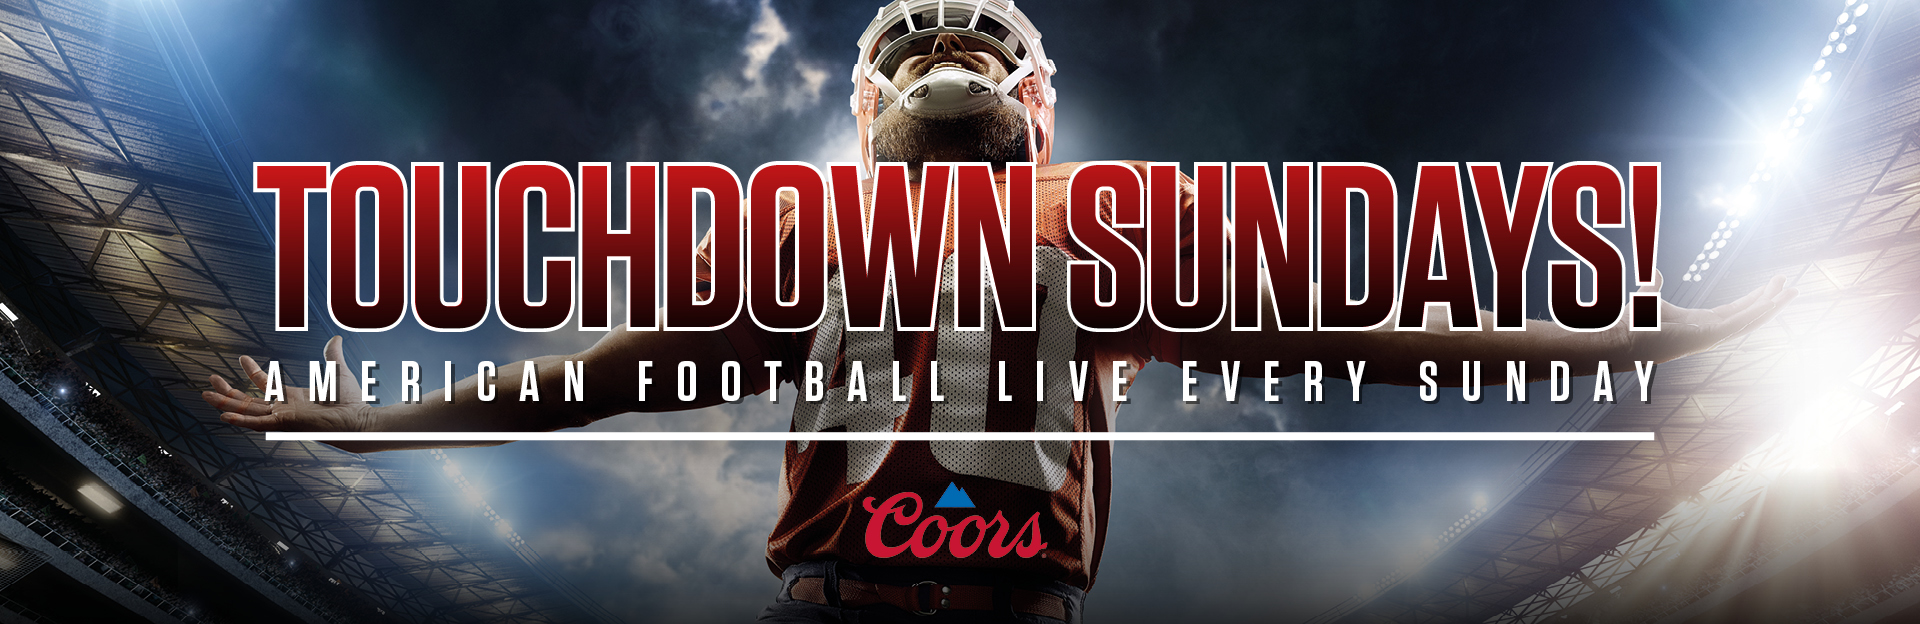 Watch NFL at The Duke of Wellington